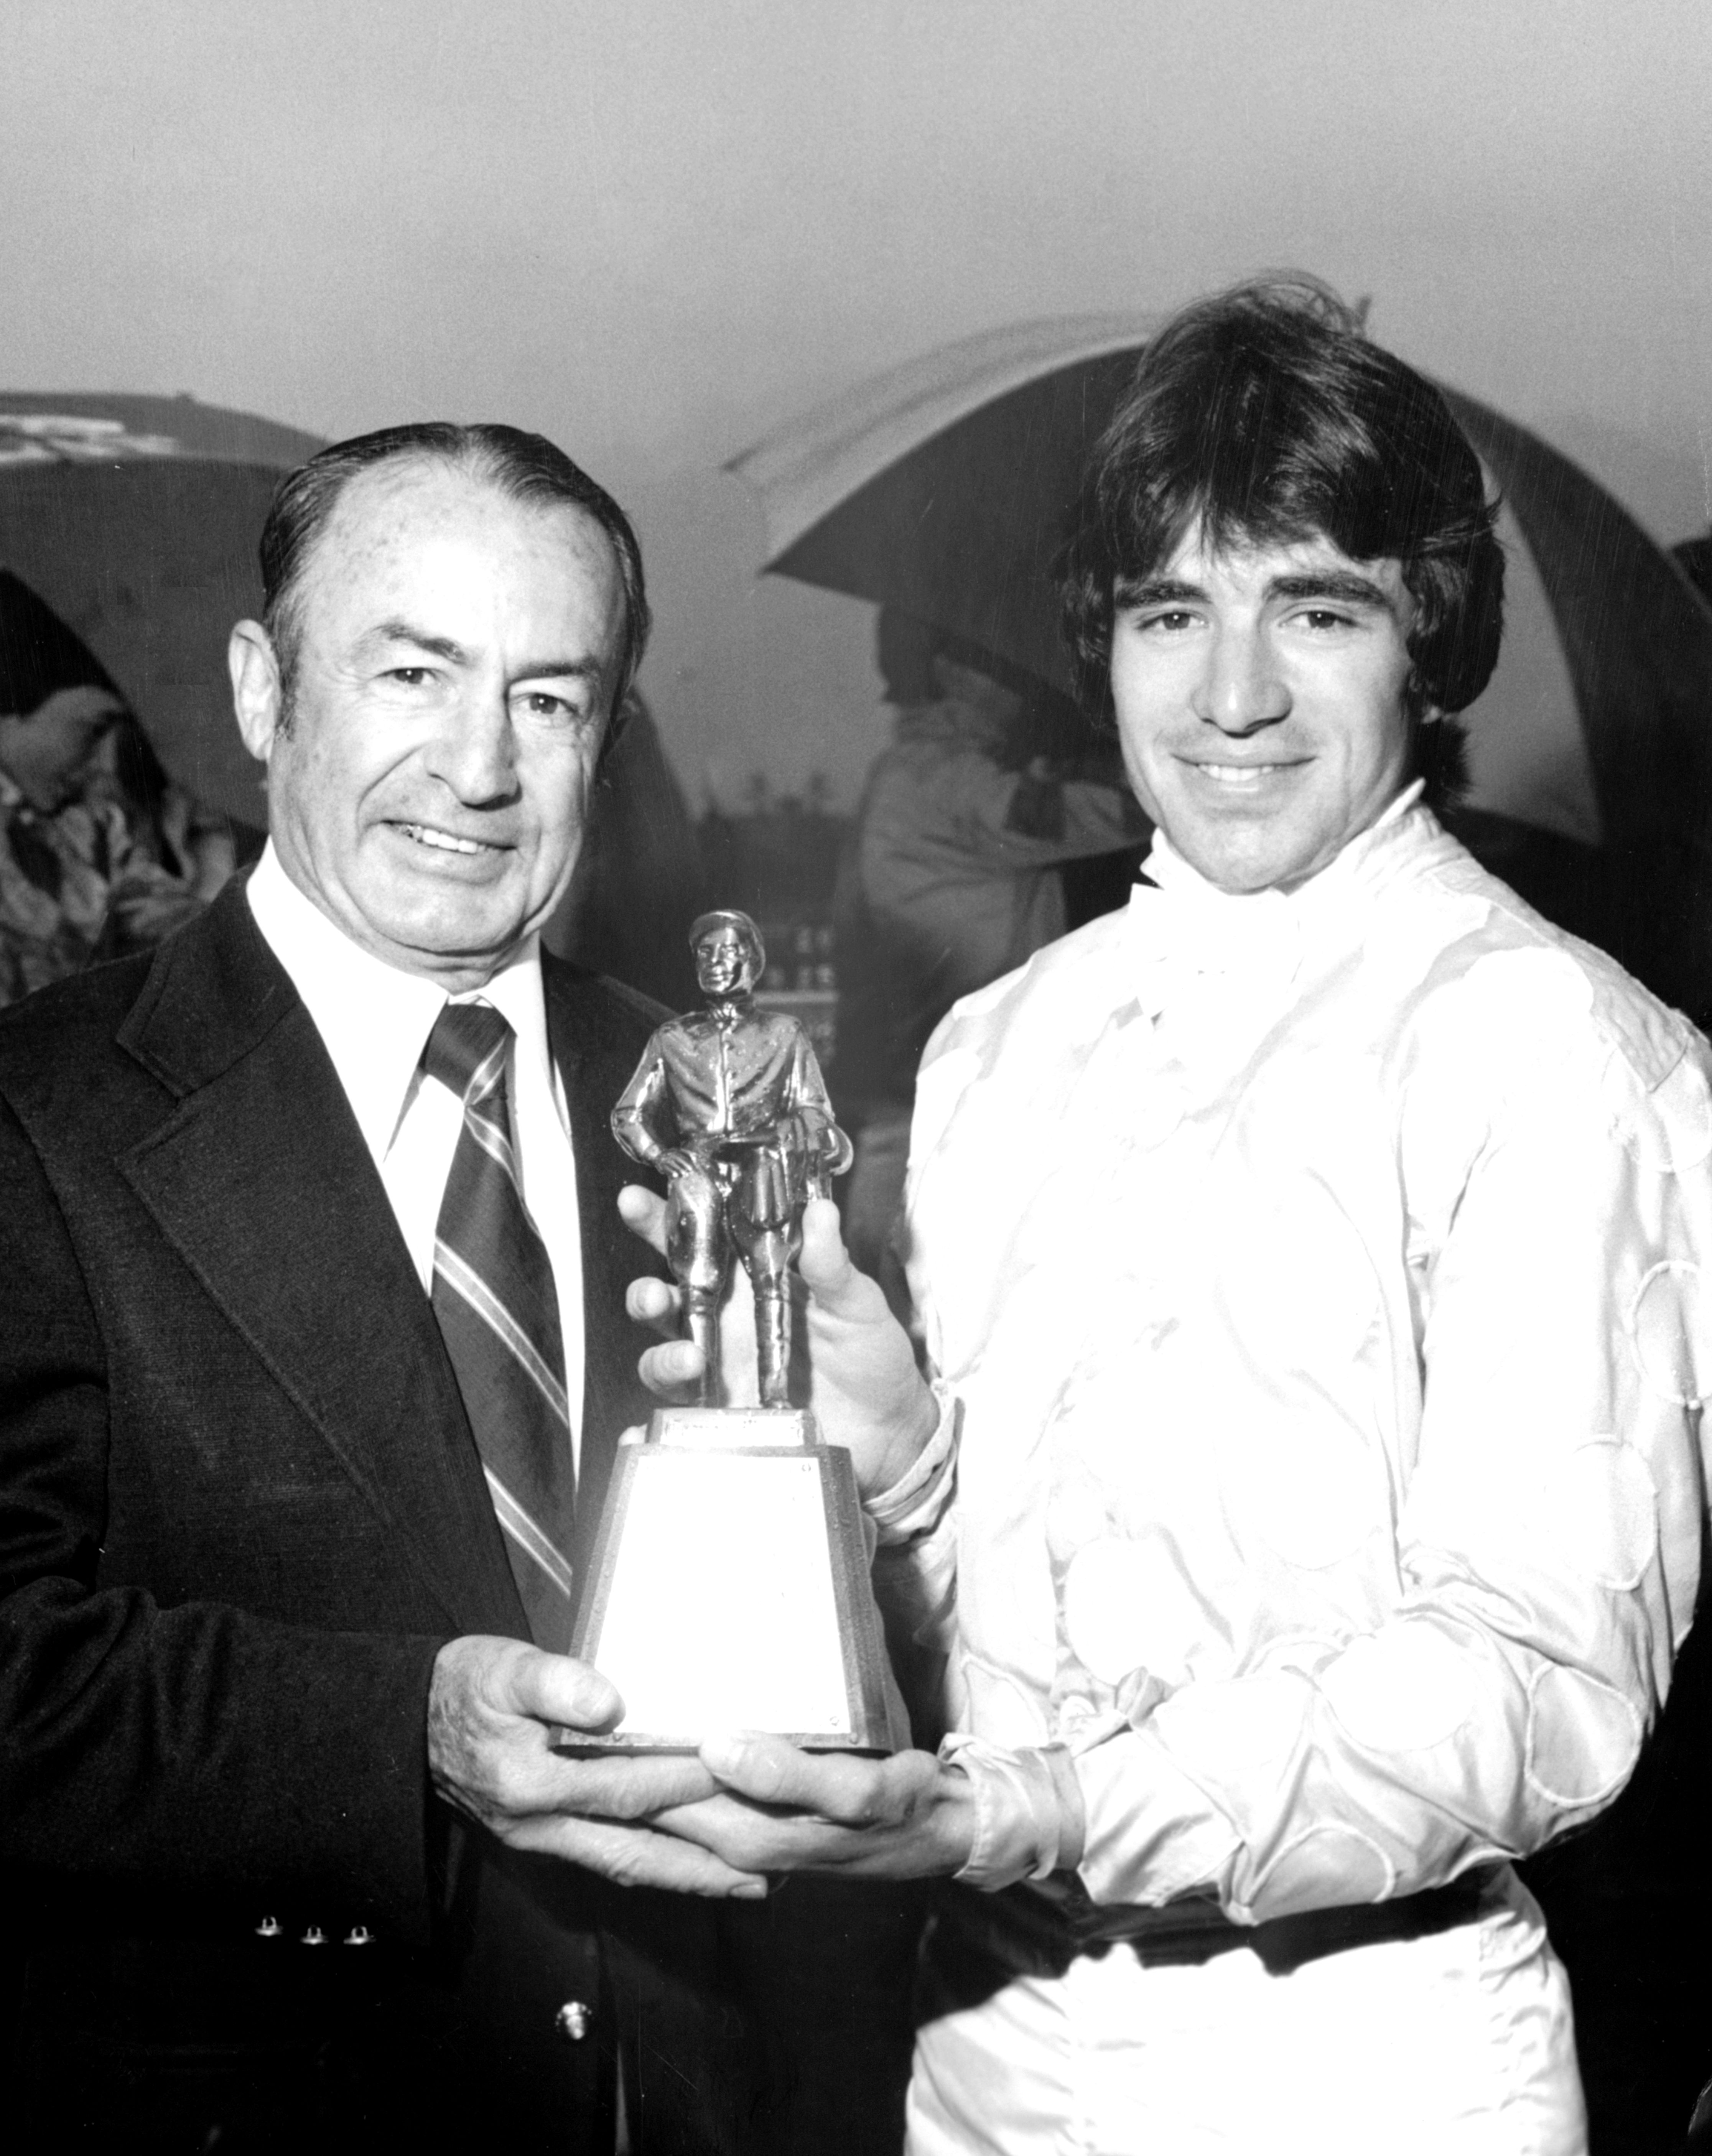 Darrel McHargue is presented the 1978 George Woolf Memorial Jockey Award by Ted Atkinson (Keeneland Library Thoroughbred Times Collection)